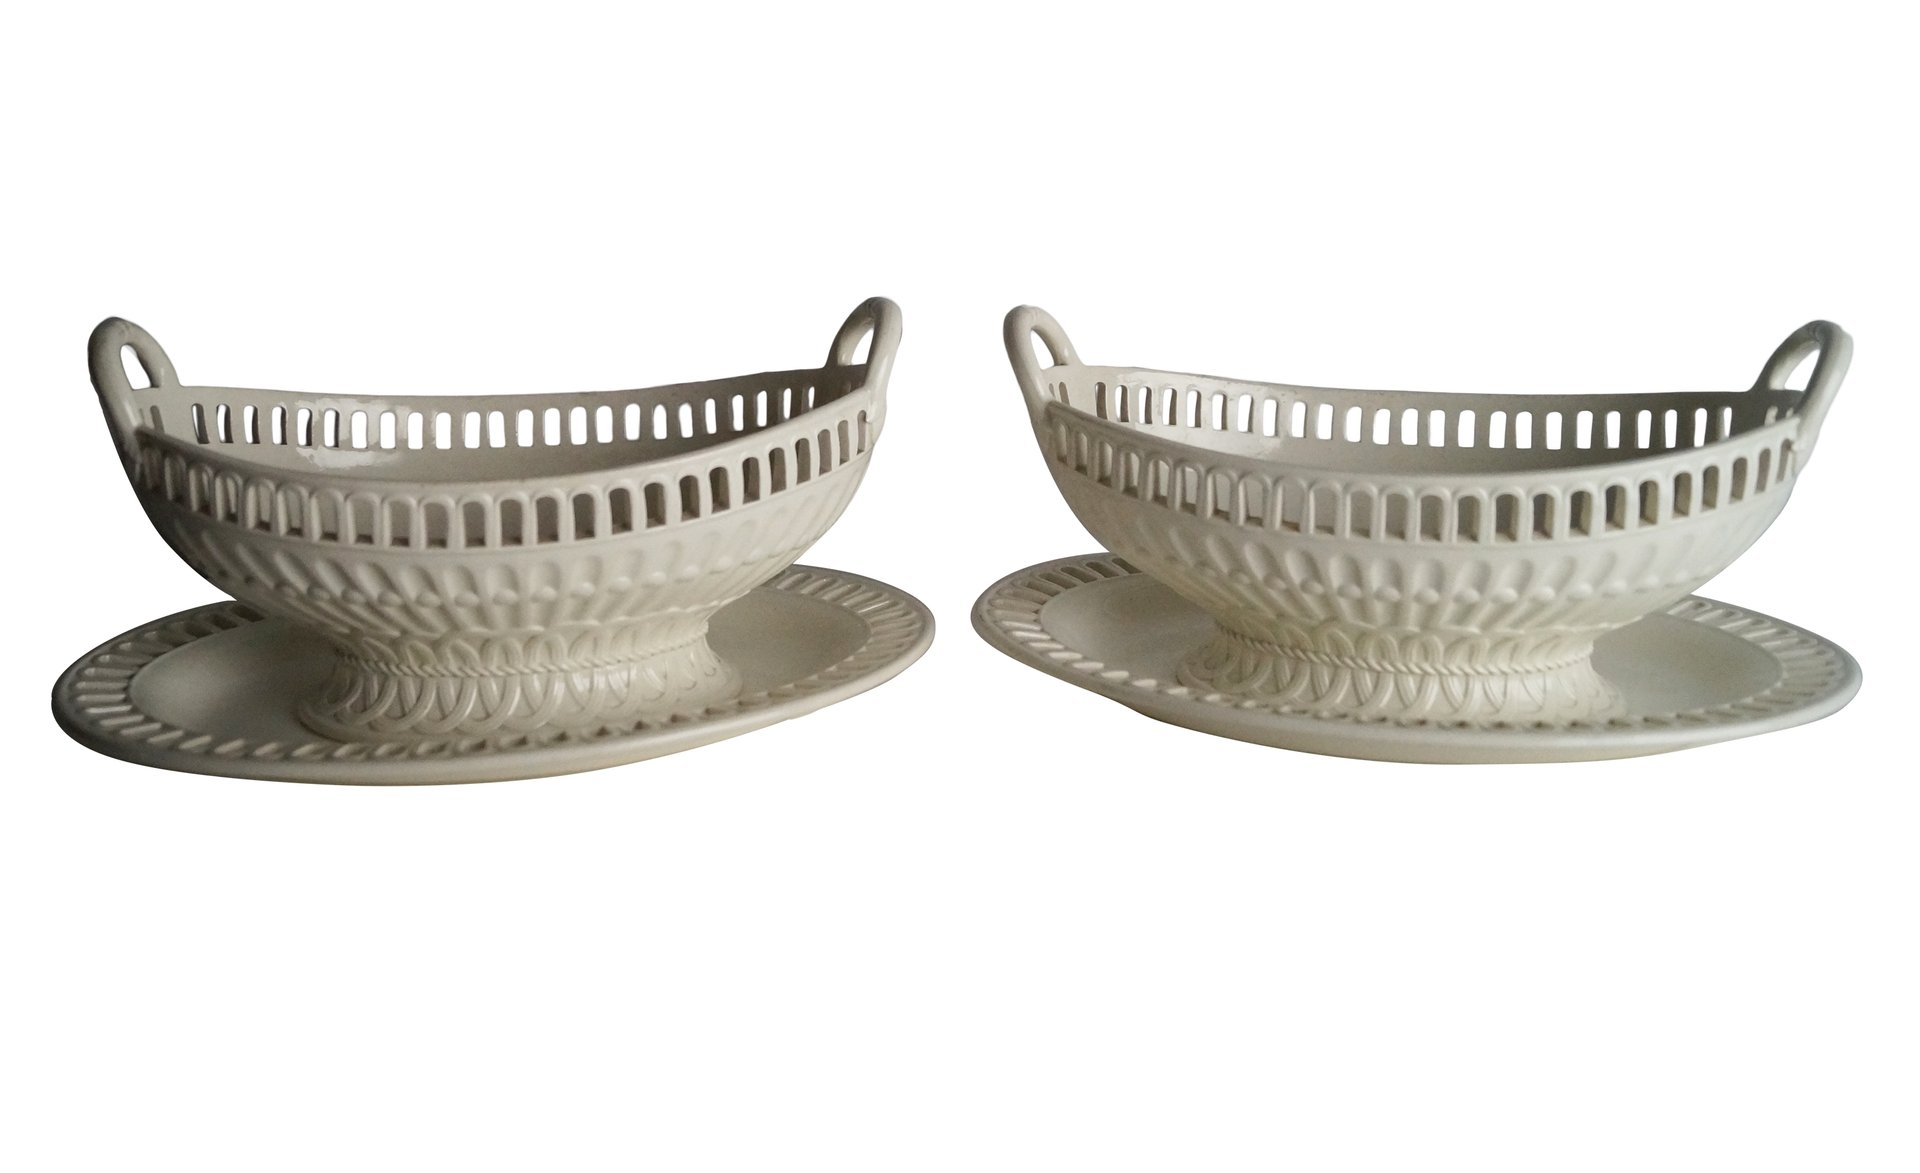 Antique Openwork Baskets From Wedgwood, 1850s, Set Of 2